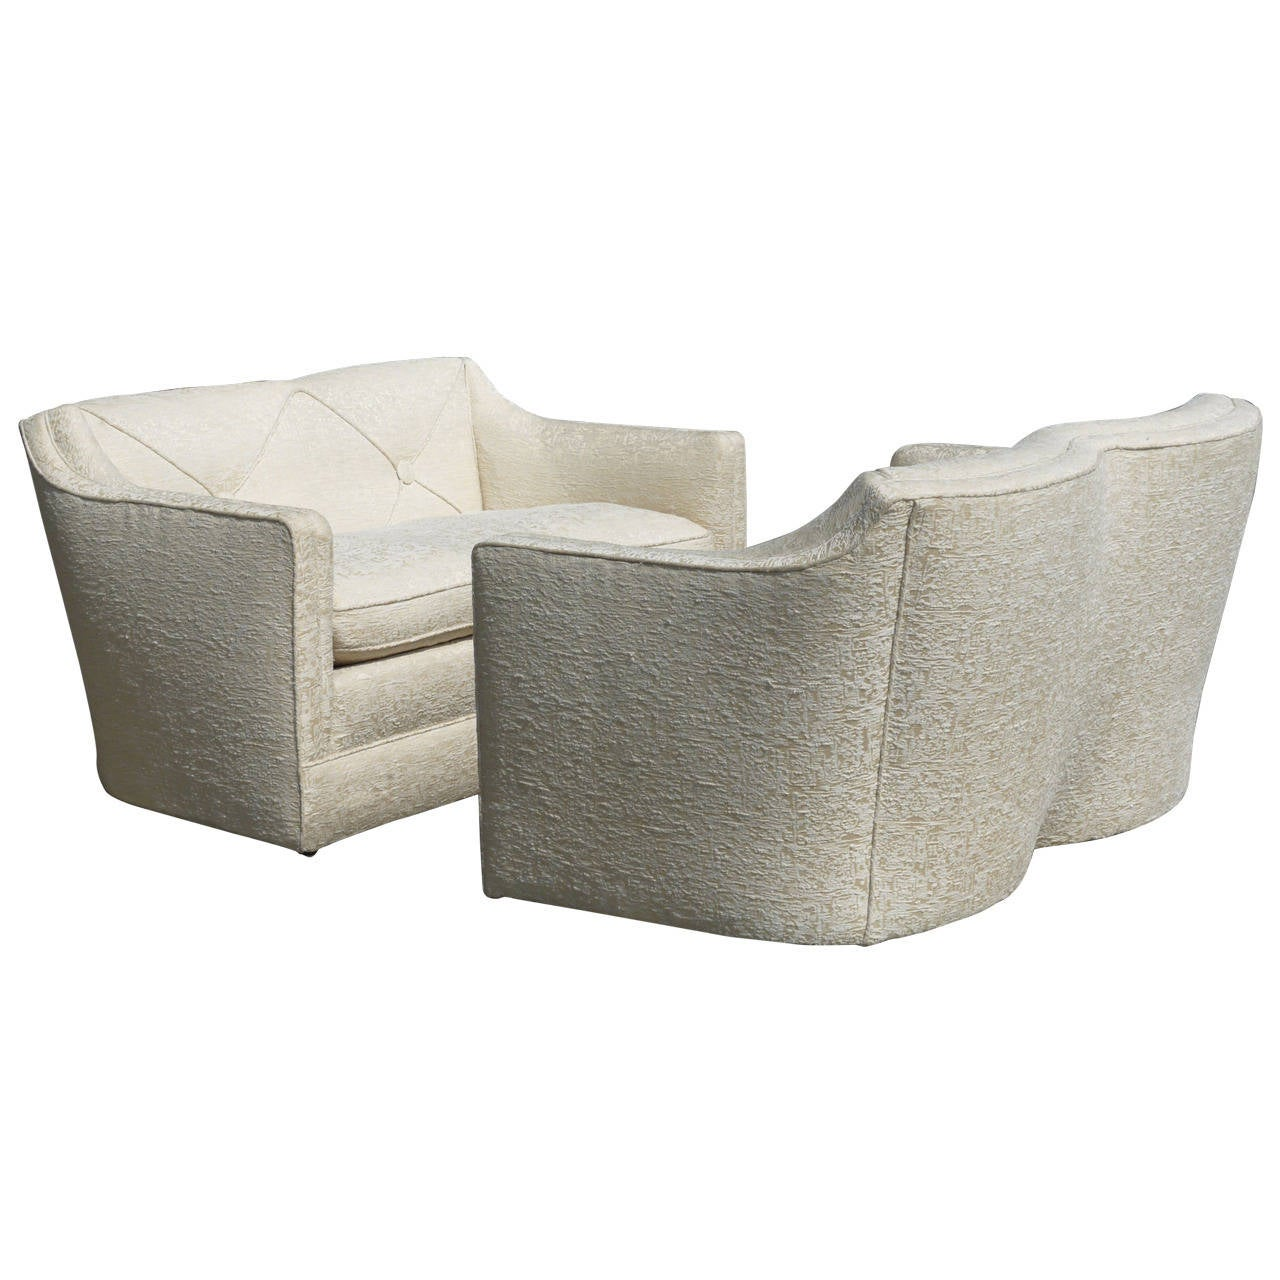 Luxurious Pair of Loveseats Attributed to Grosfeld House